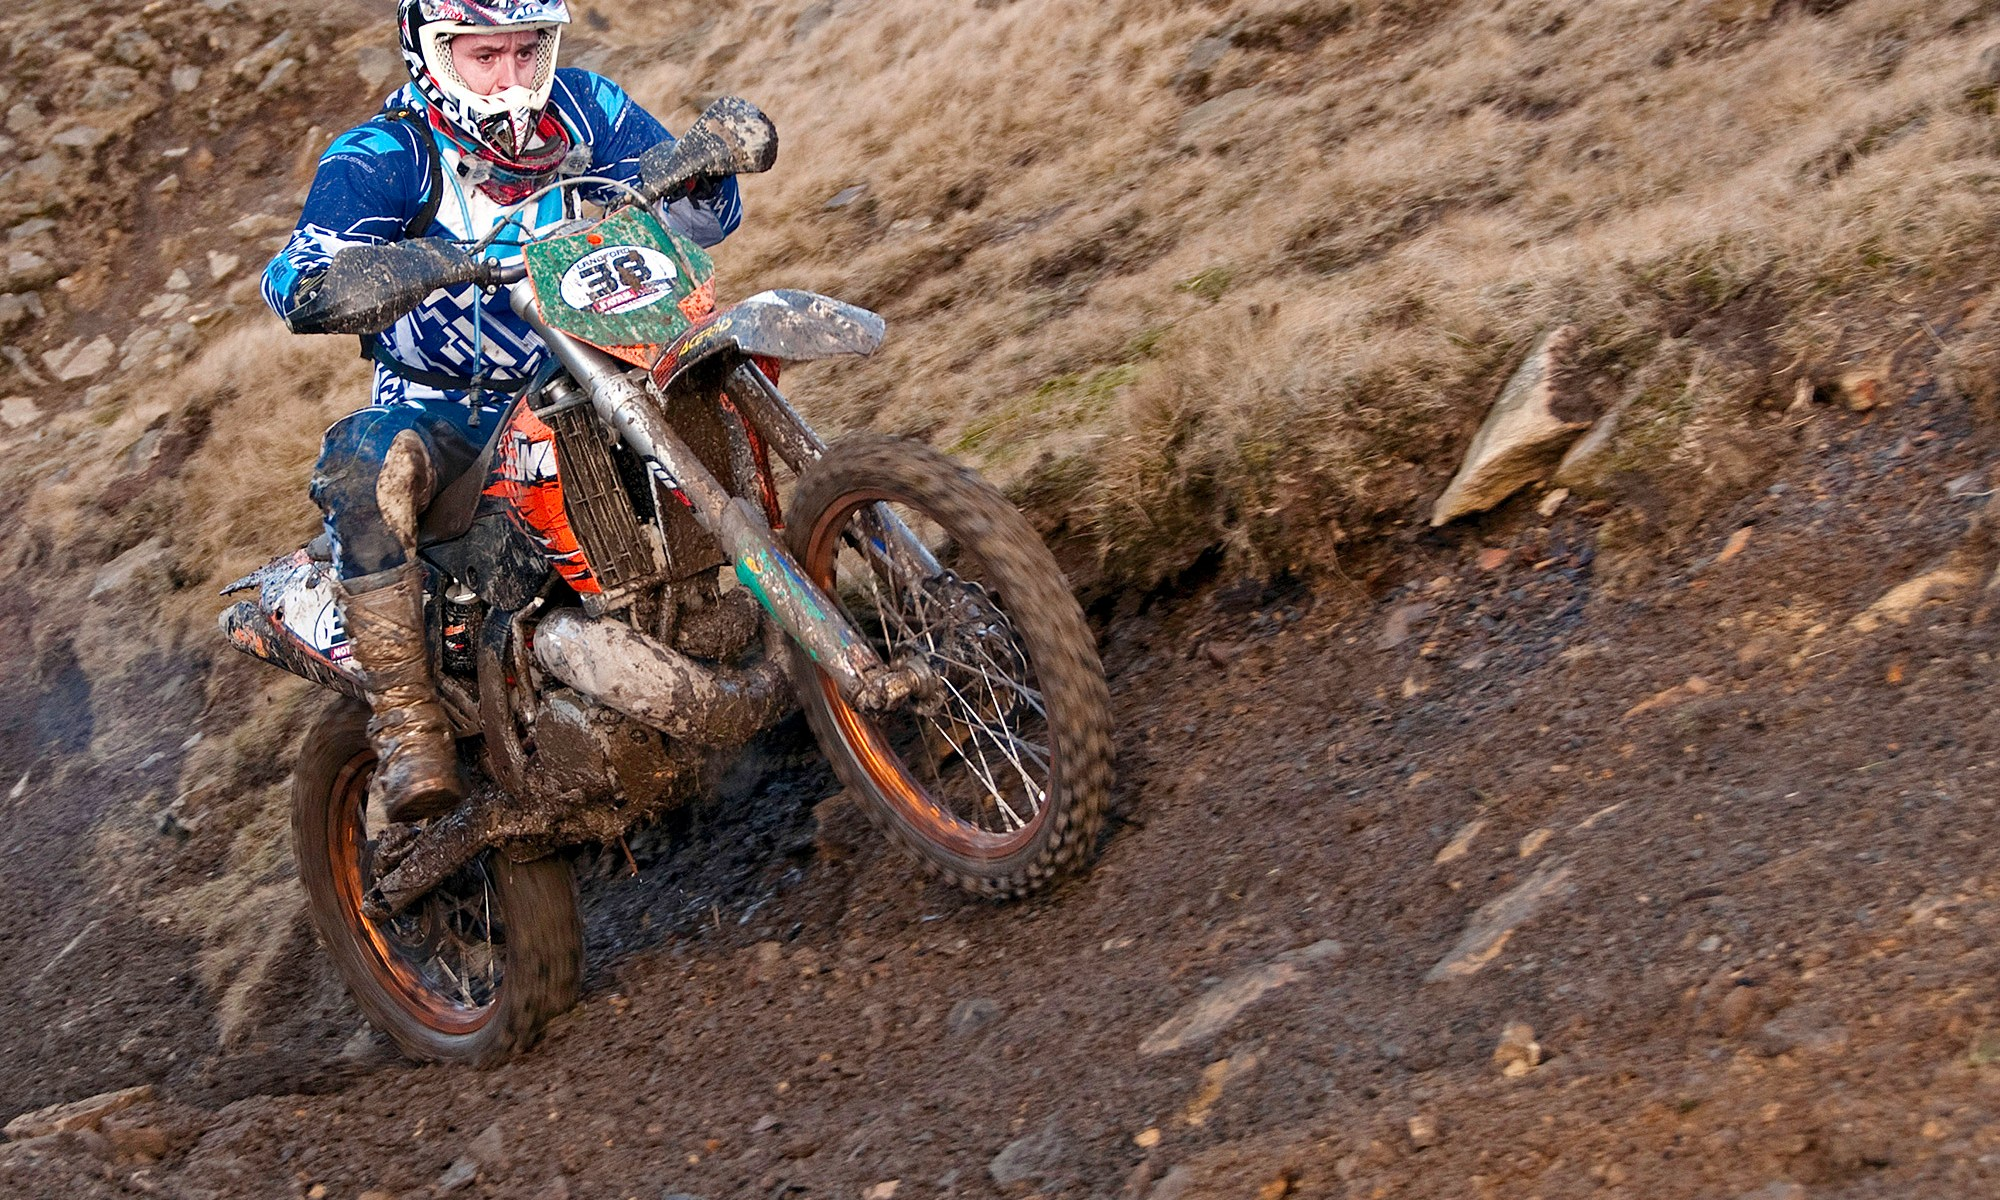 KTM 250 Motocross at Enduro